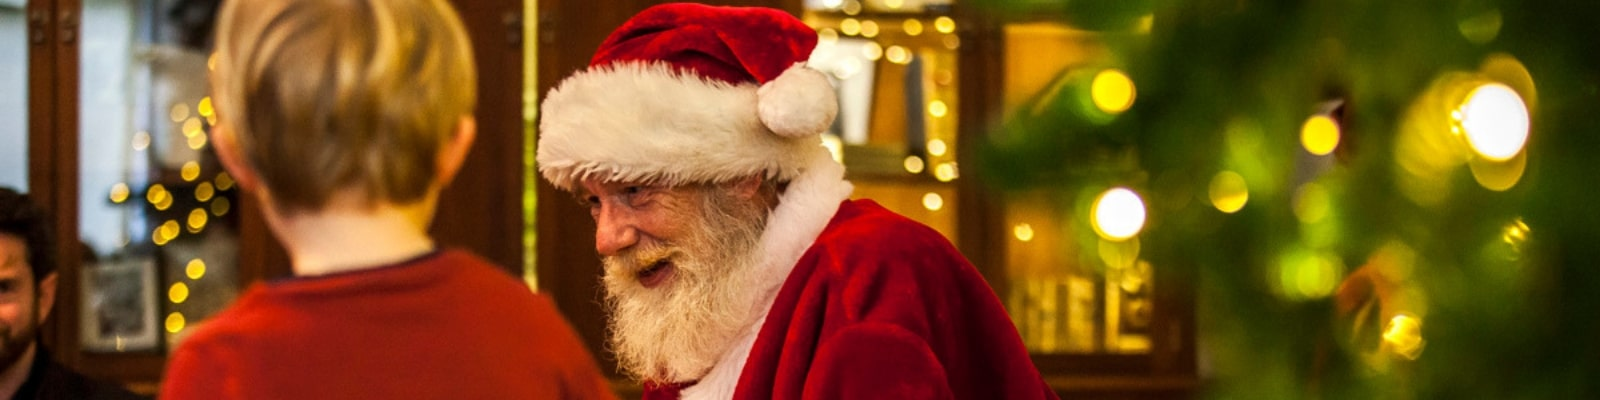 https://www.airfield.ie/wp-content/uploads/2019/08/Meeting-Santa-at-Airfield-Estate-min.jpg